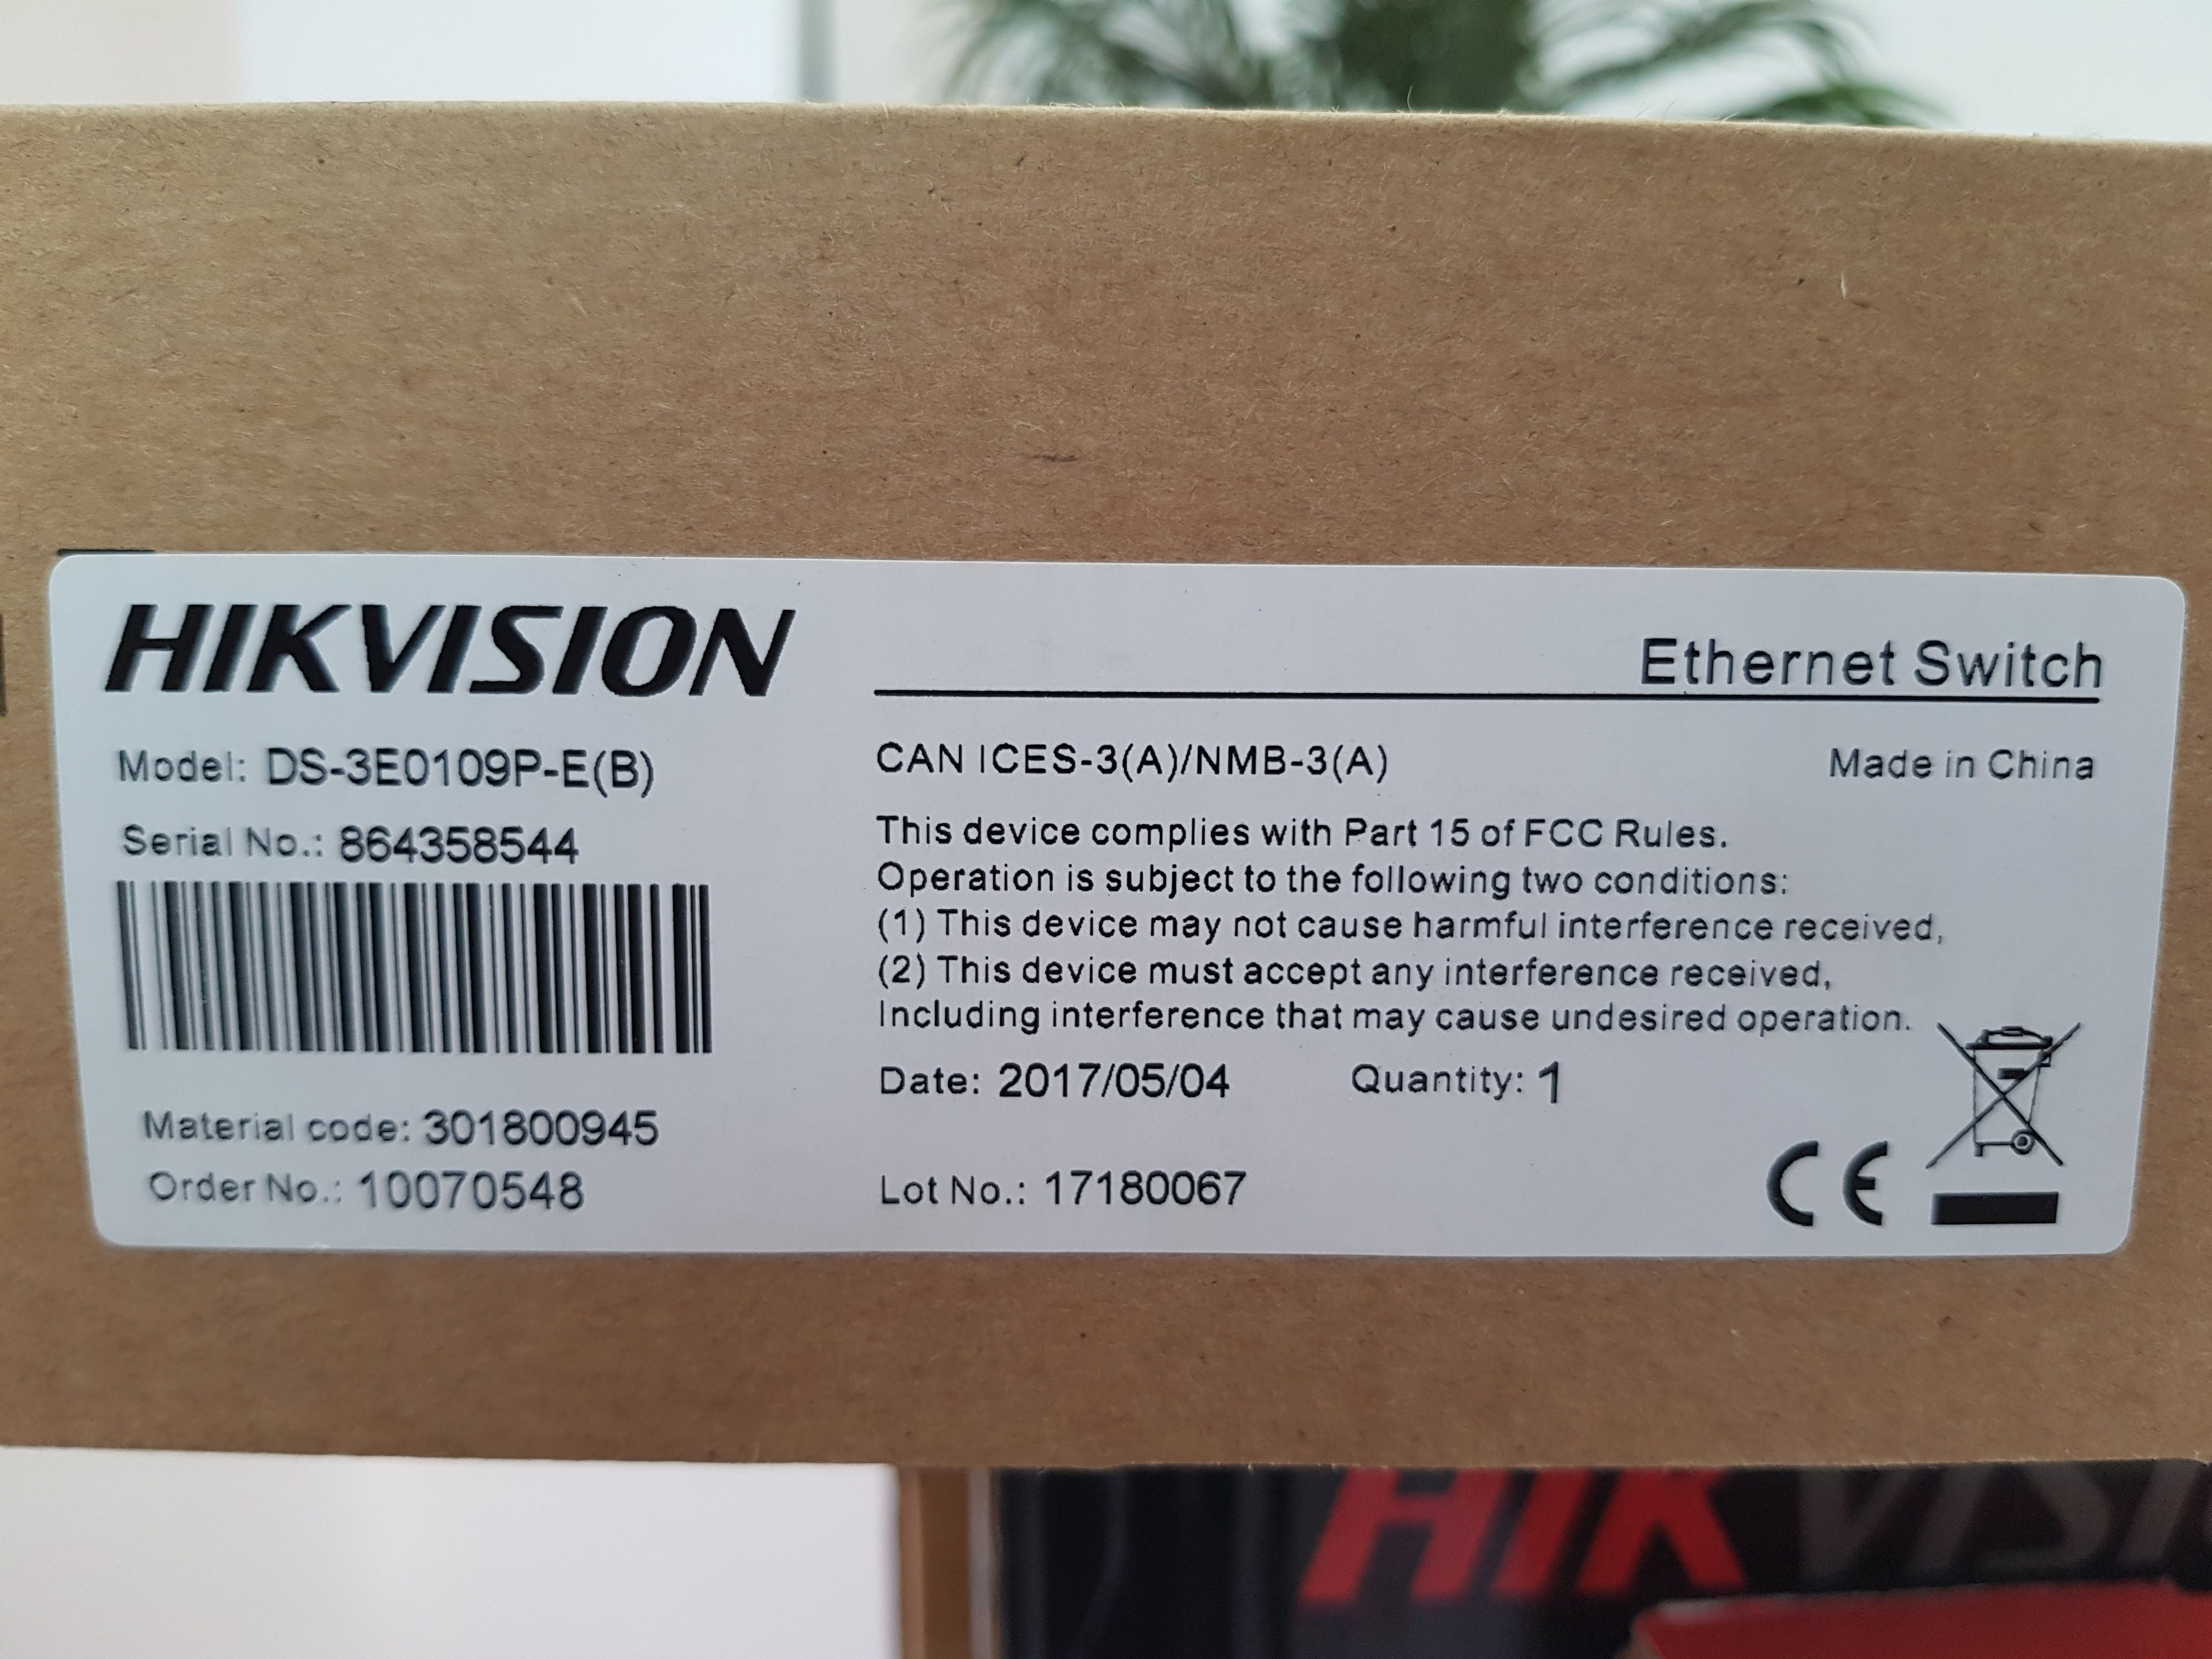 Hikvision PoE switch